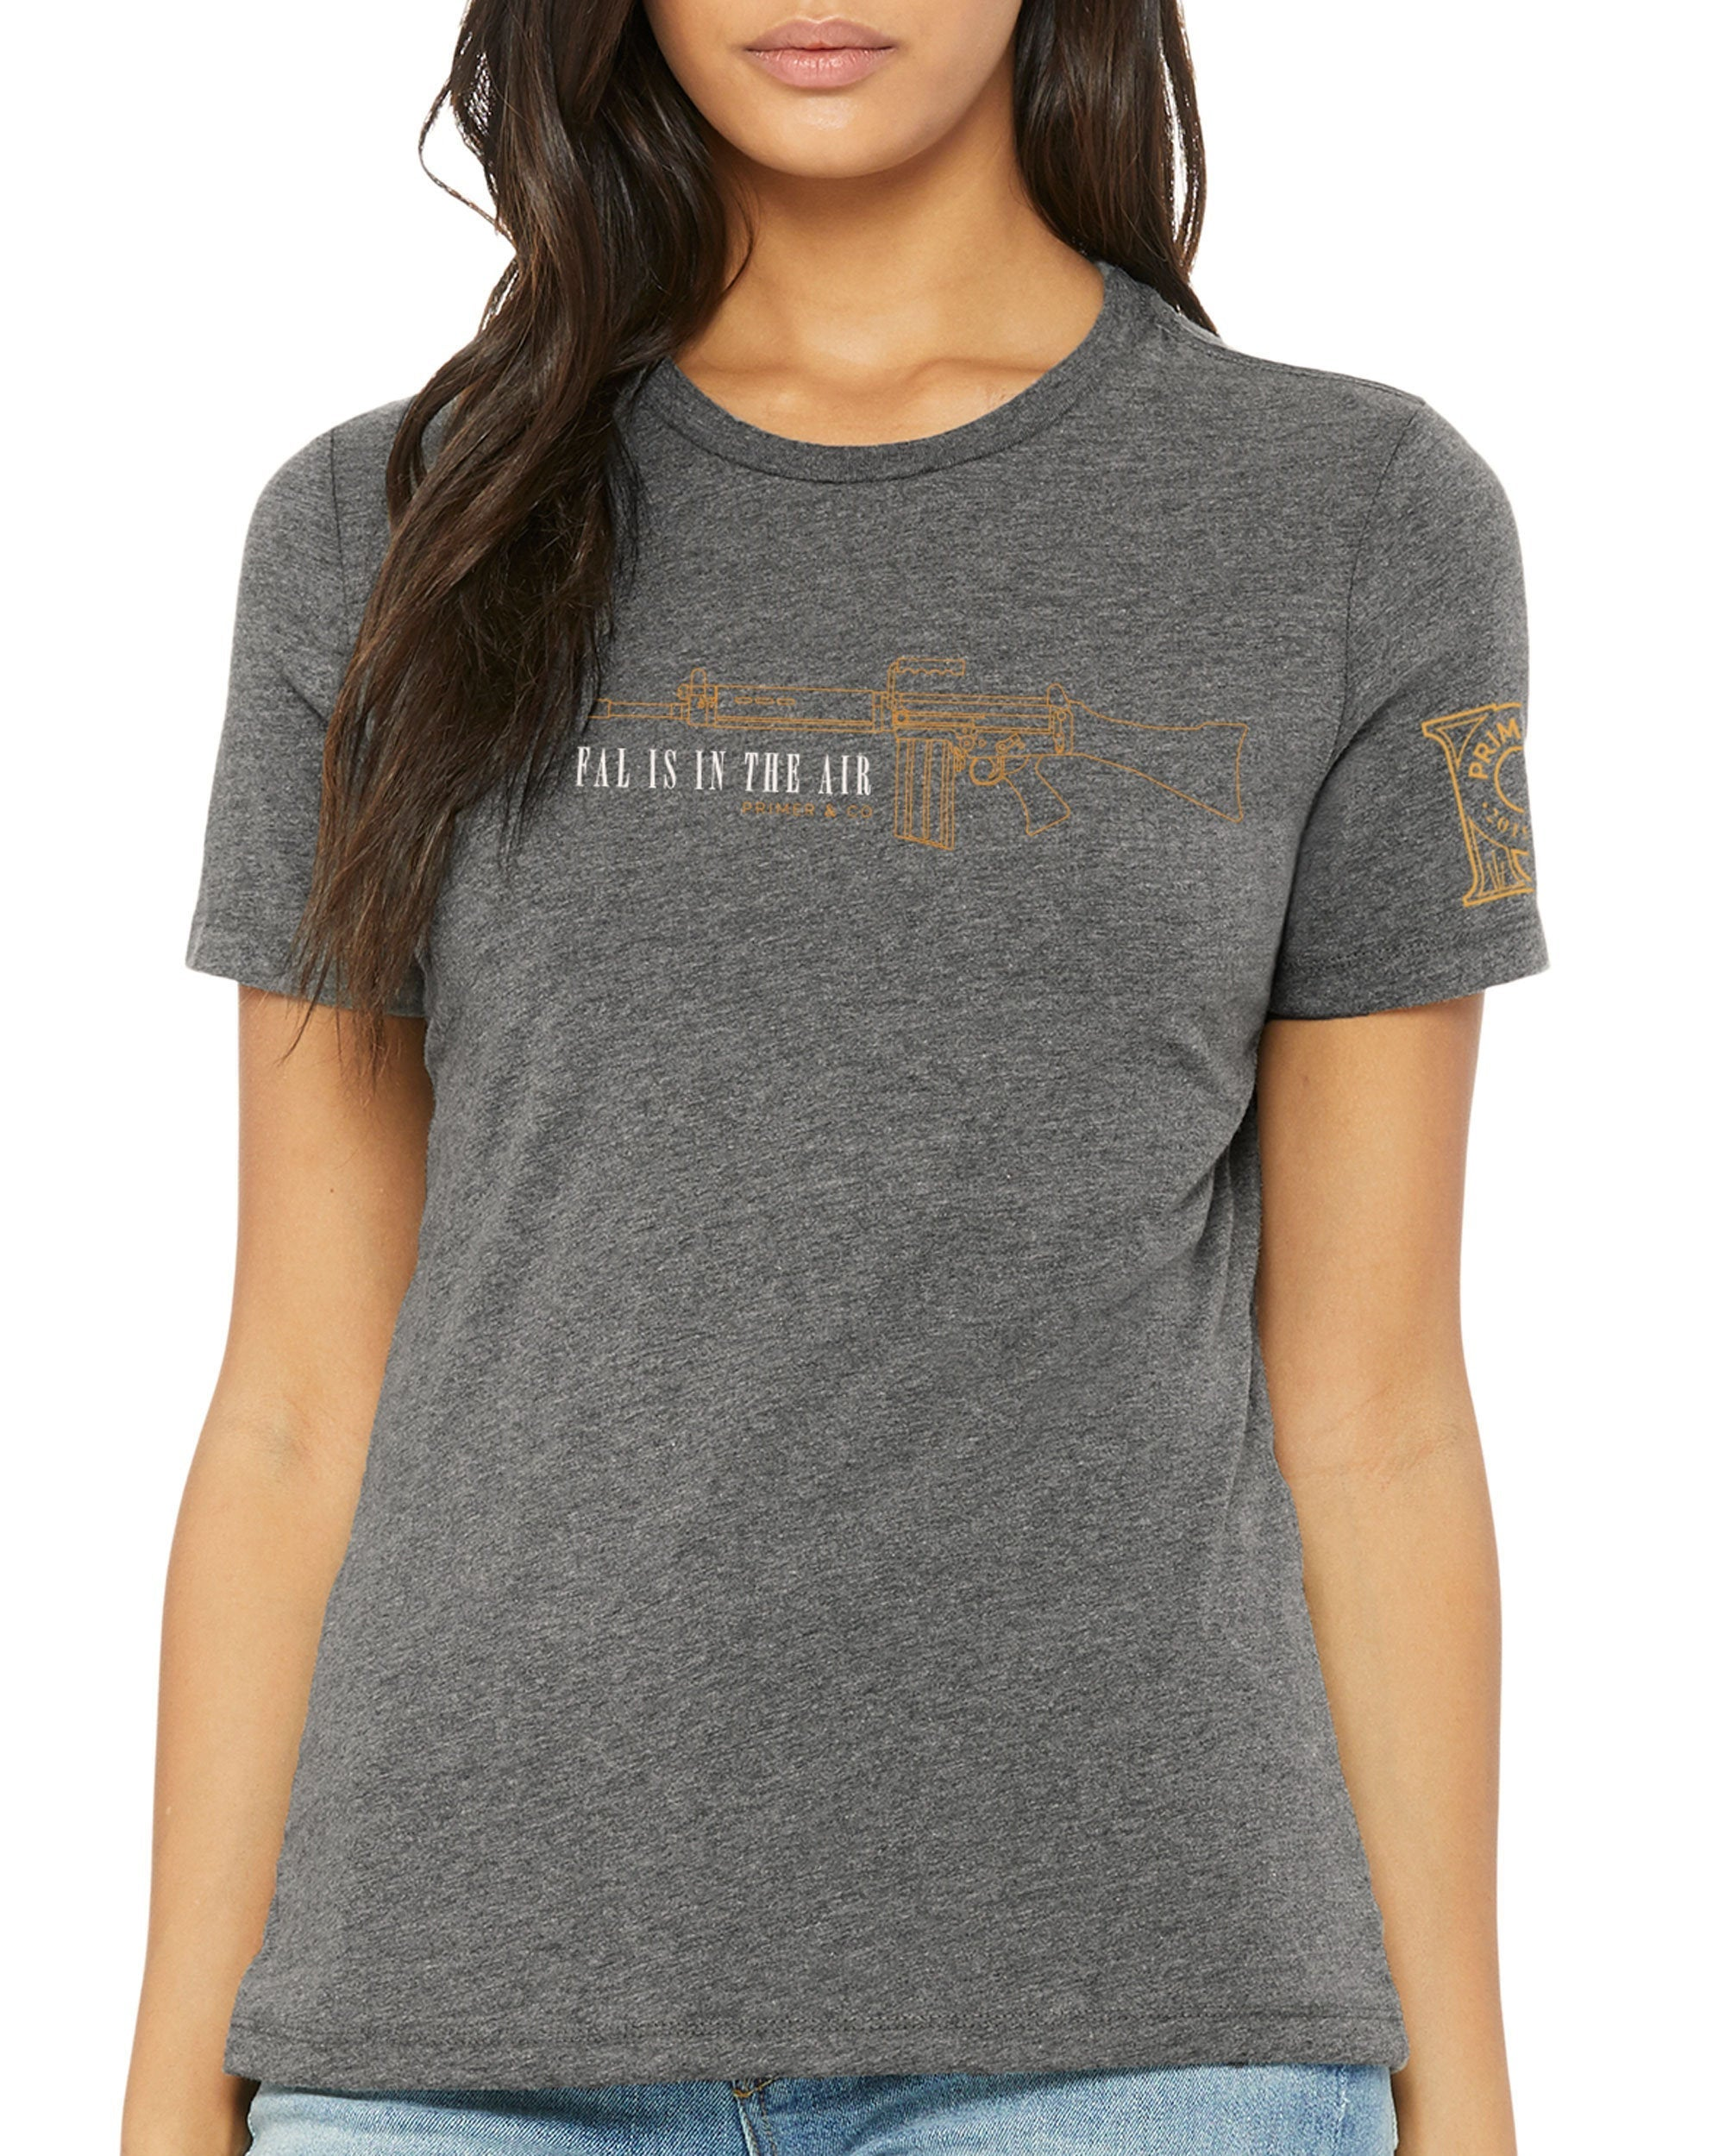 Women's Crew Neck Tee - FAL is in the Air